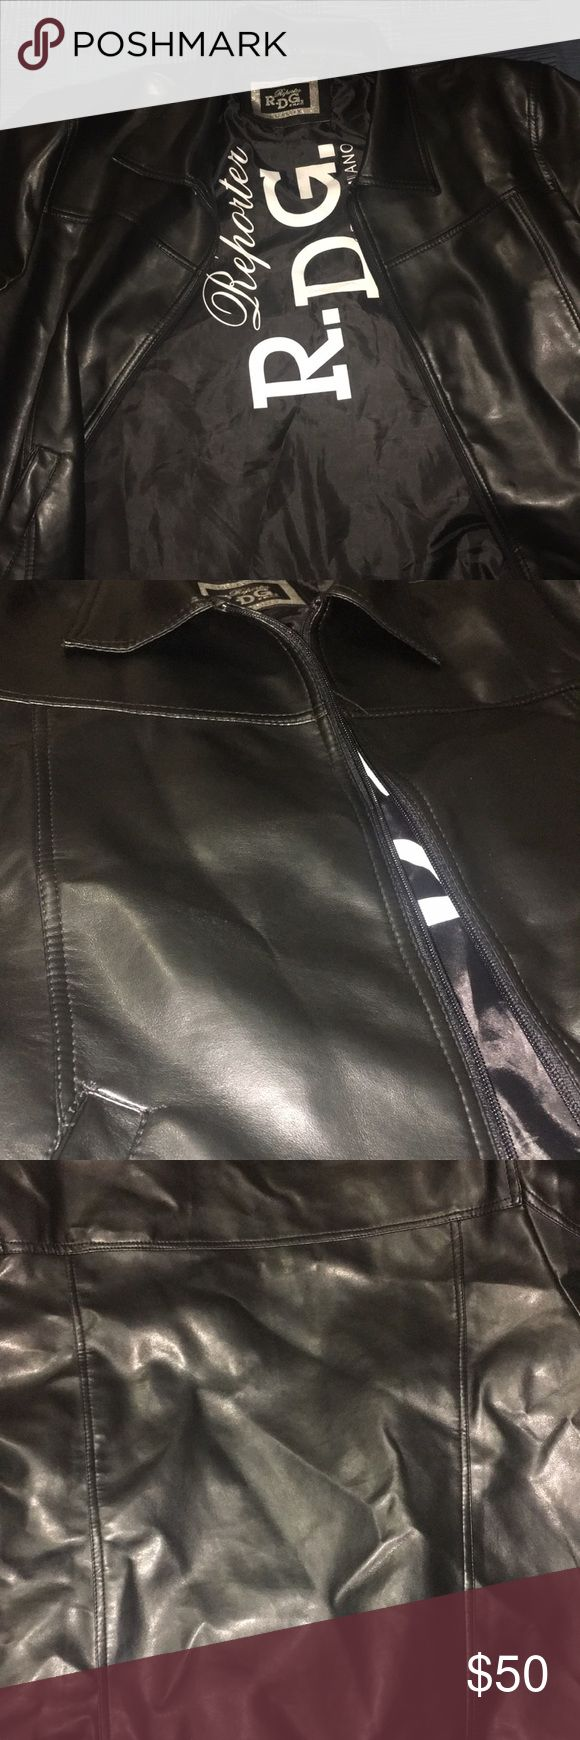 R.D.G Milano leather jacket Leather jacket, Leather